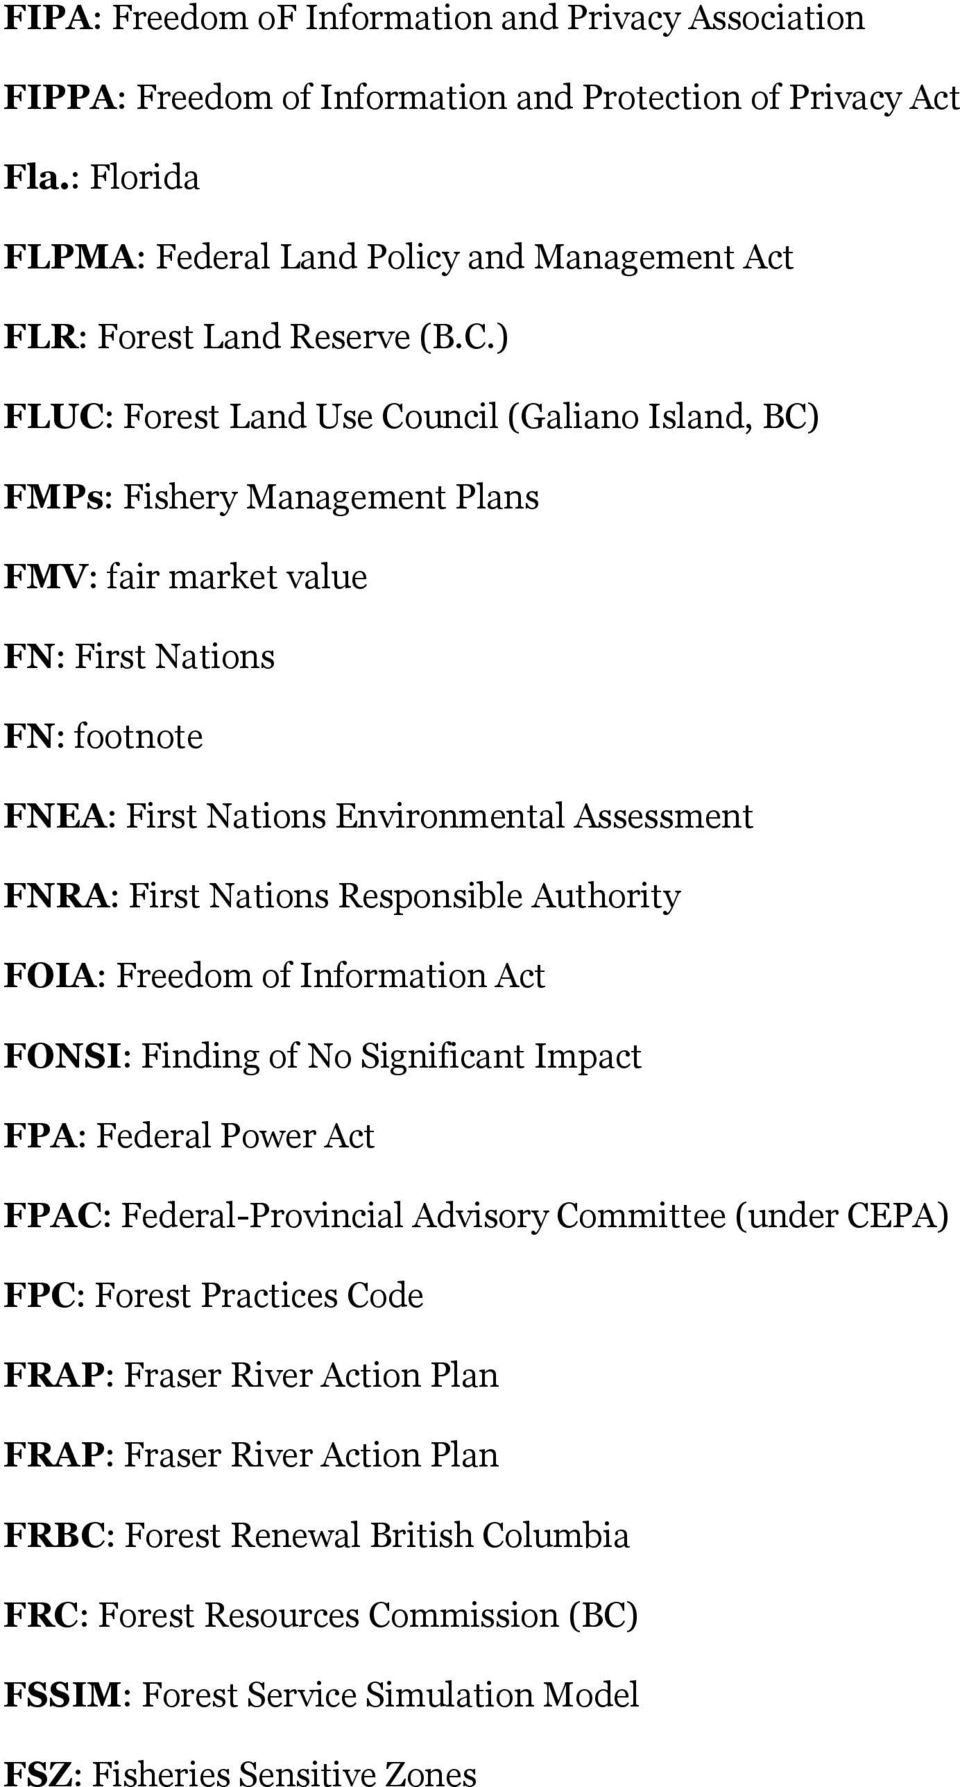 ) FLUC: Forest Land Use Council (Galiano Island, BC) FMPs: Fishery Management Plans FMV: fair market value FN: First Nations FN: footnote FNEA: First Nations Environmental Assessment FNRA: First